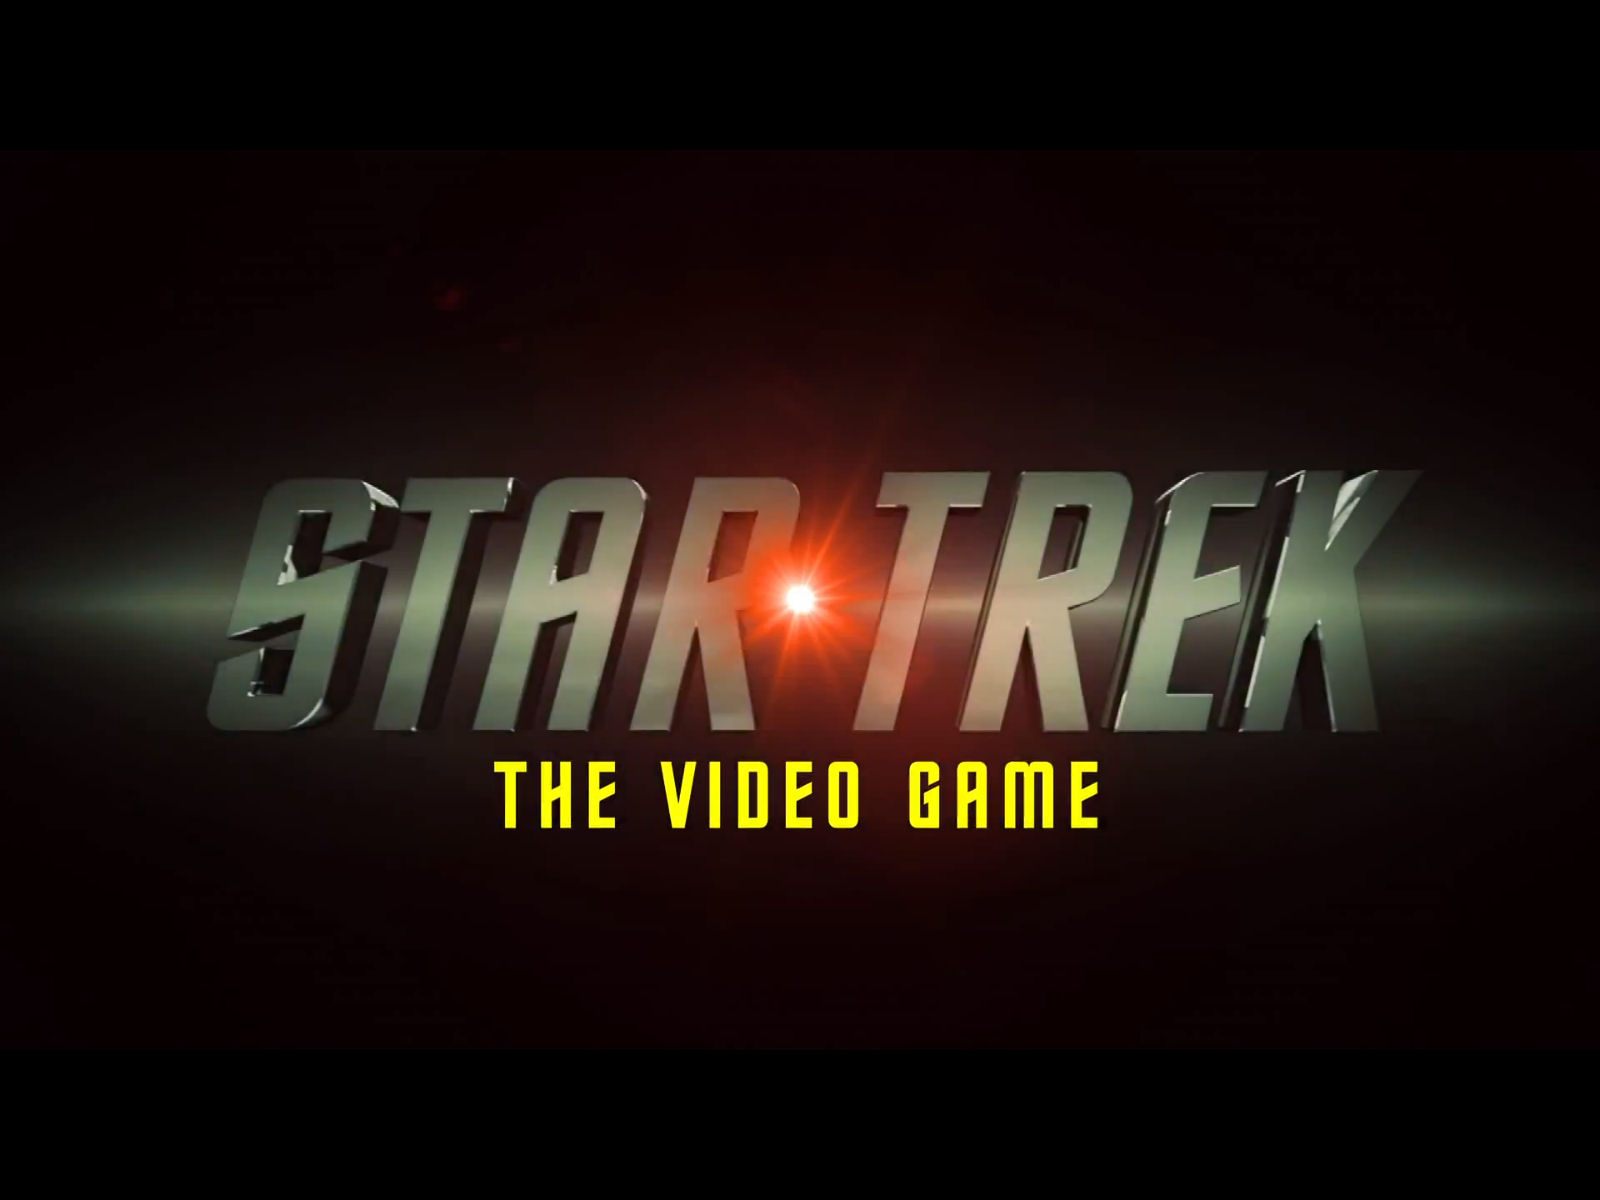 Star Trek 2013 Game Logo Wallpaper